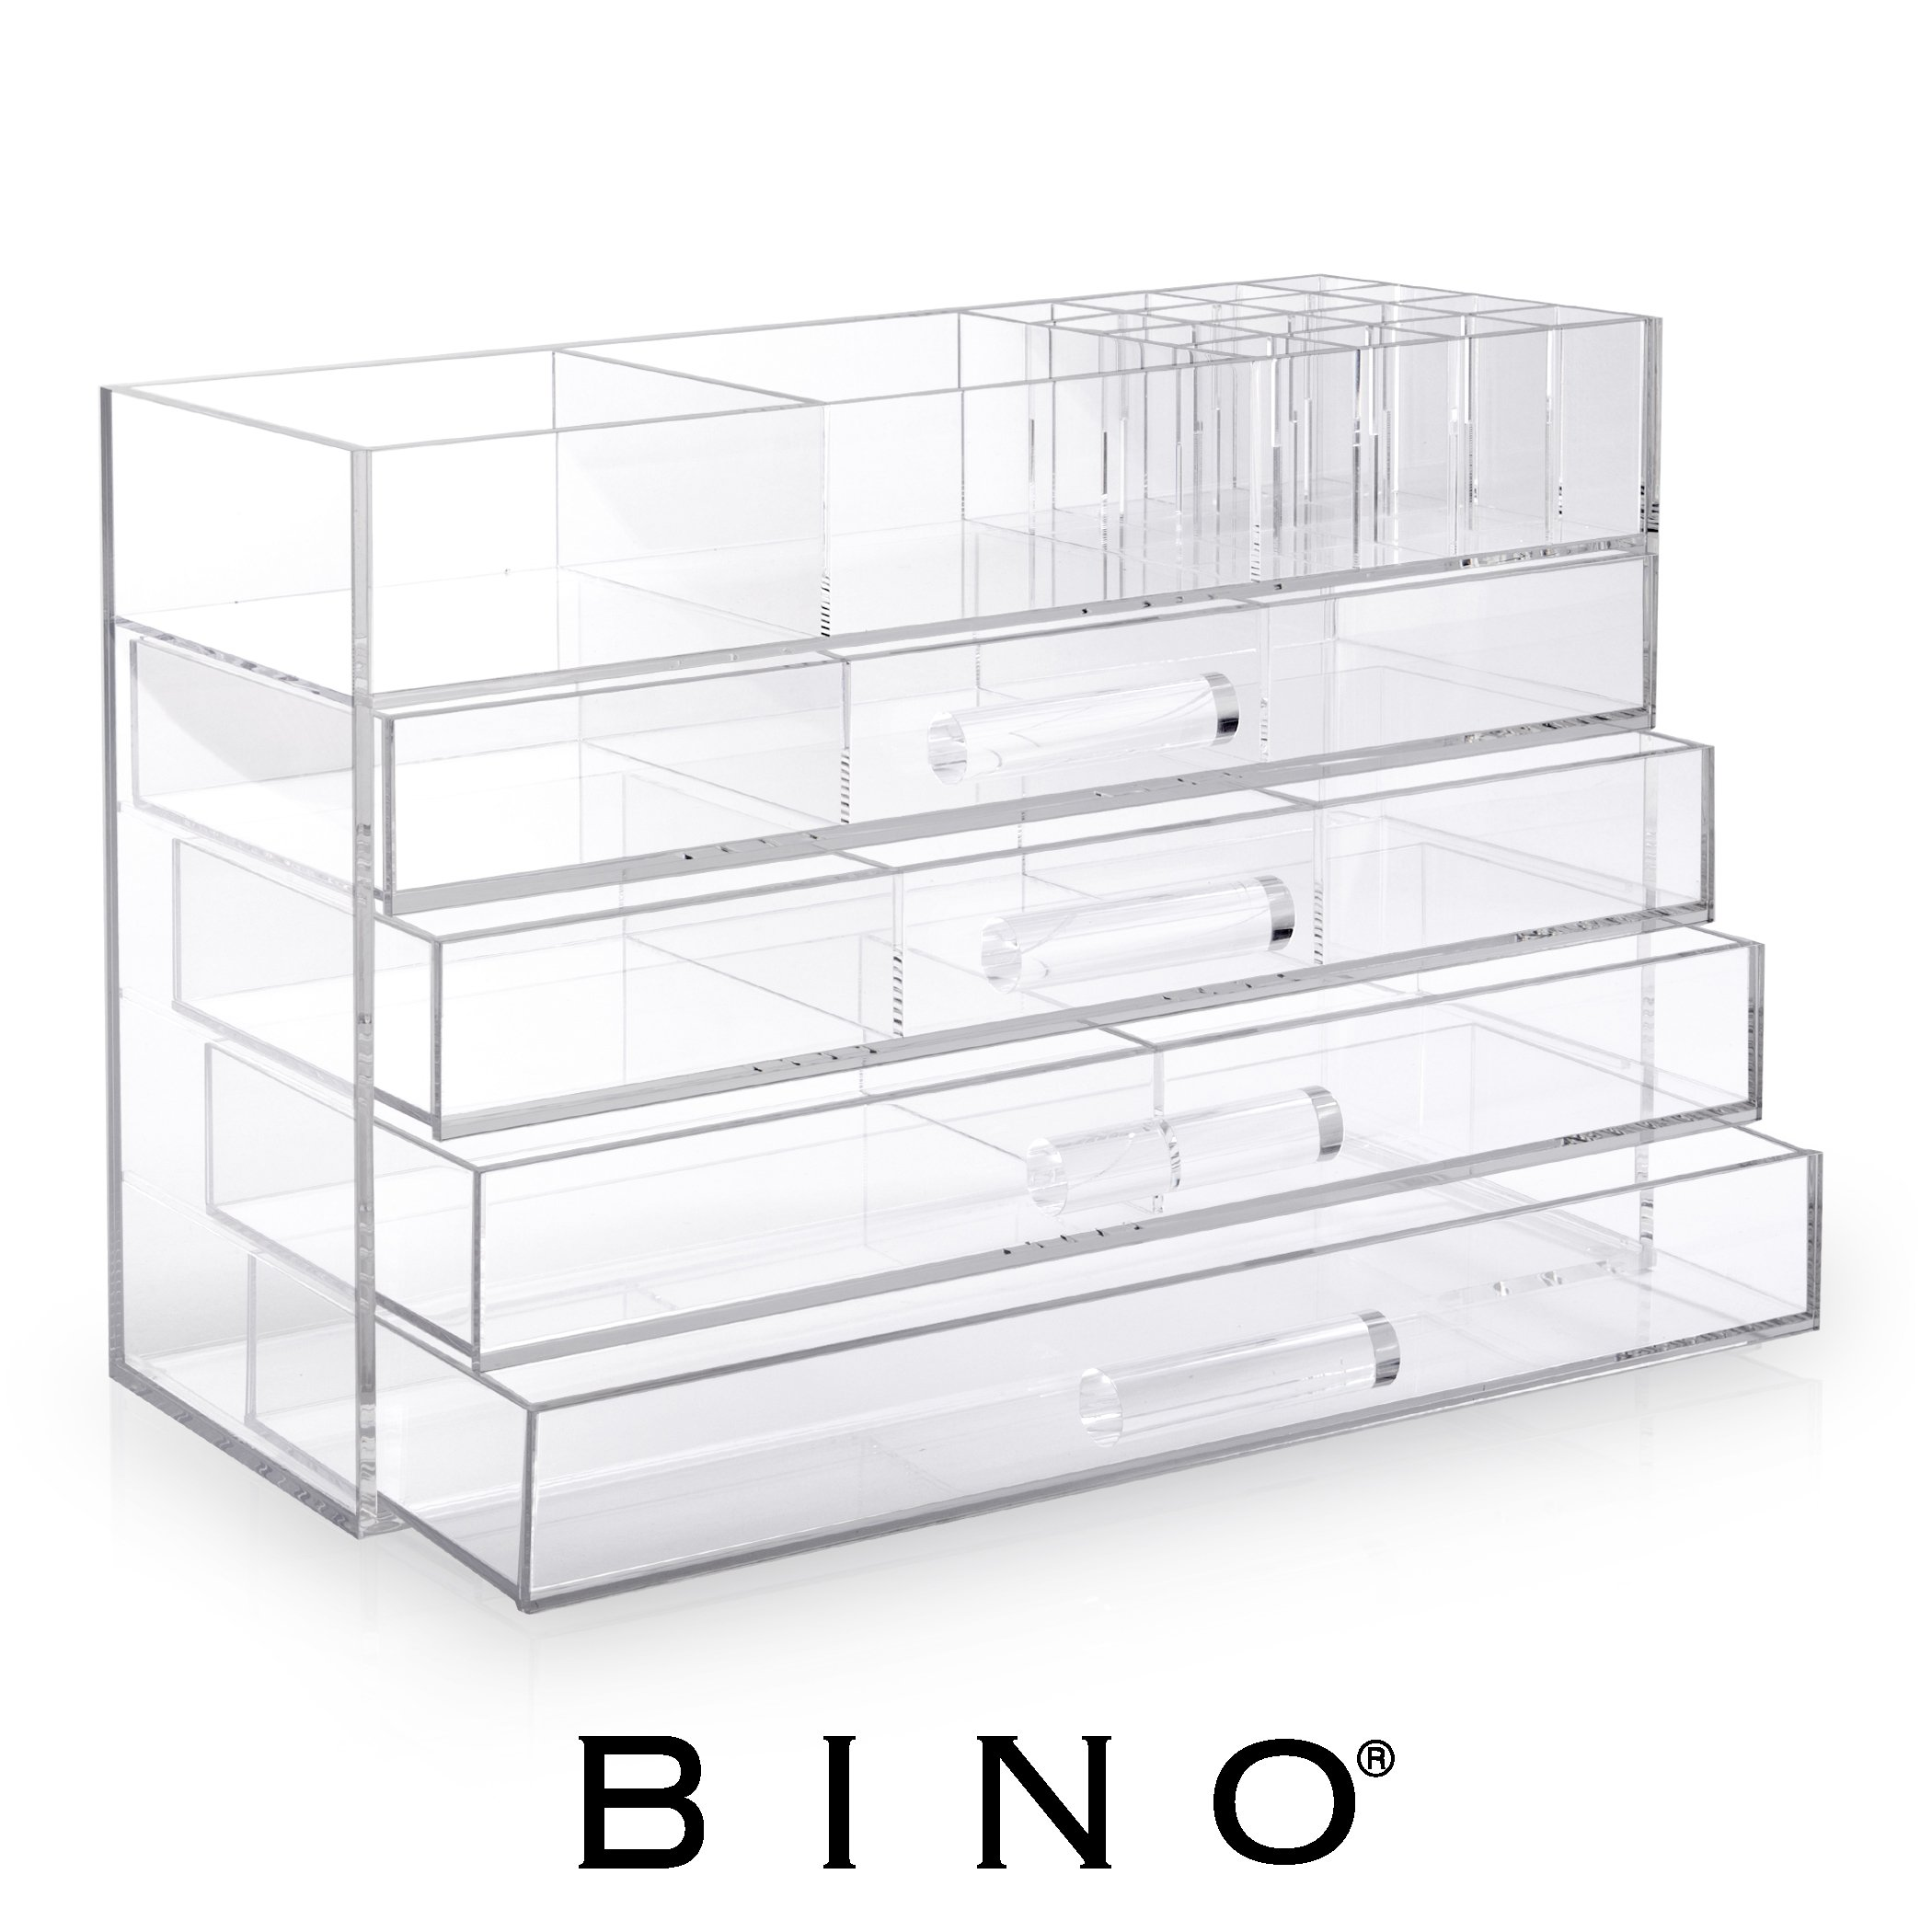 BINO Acrylic Jewelry and Makeup Chest Organizer with 4 Divided Removable Drawers and Lipstick Storage - Clear and Transparent Big 5-Tier Cosmetic Storage Display Box Case